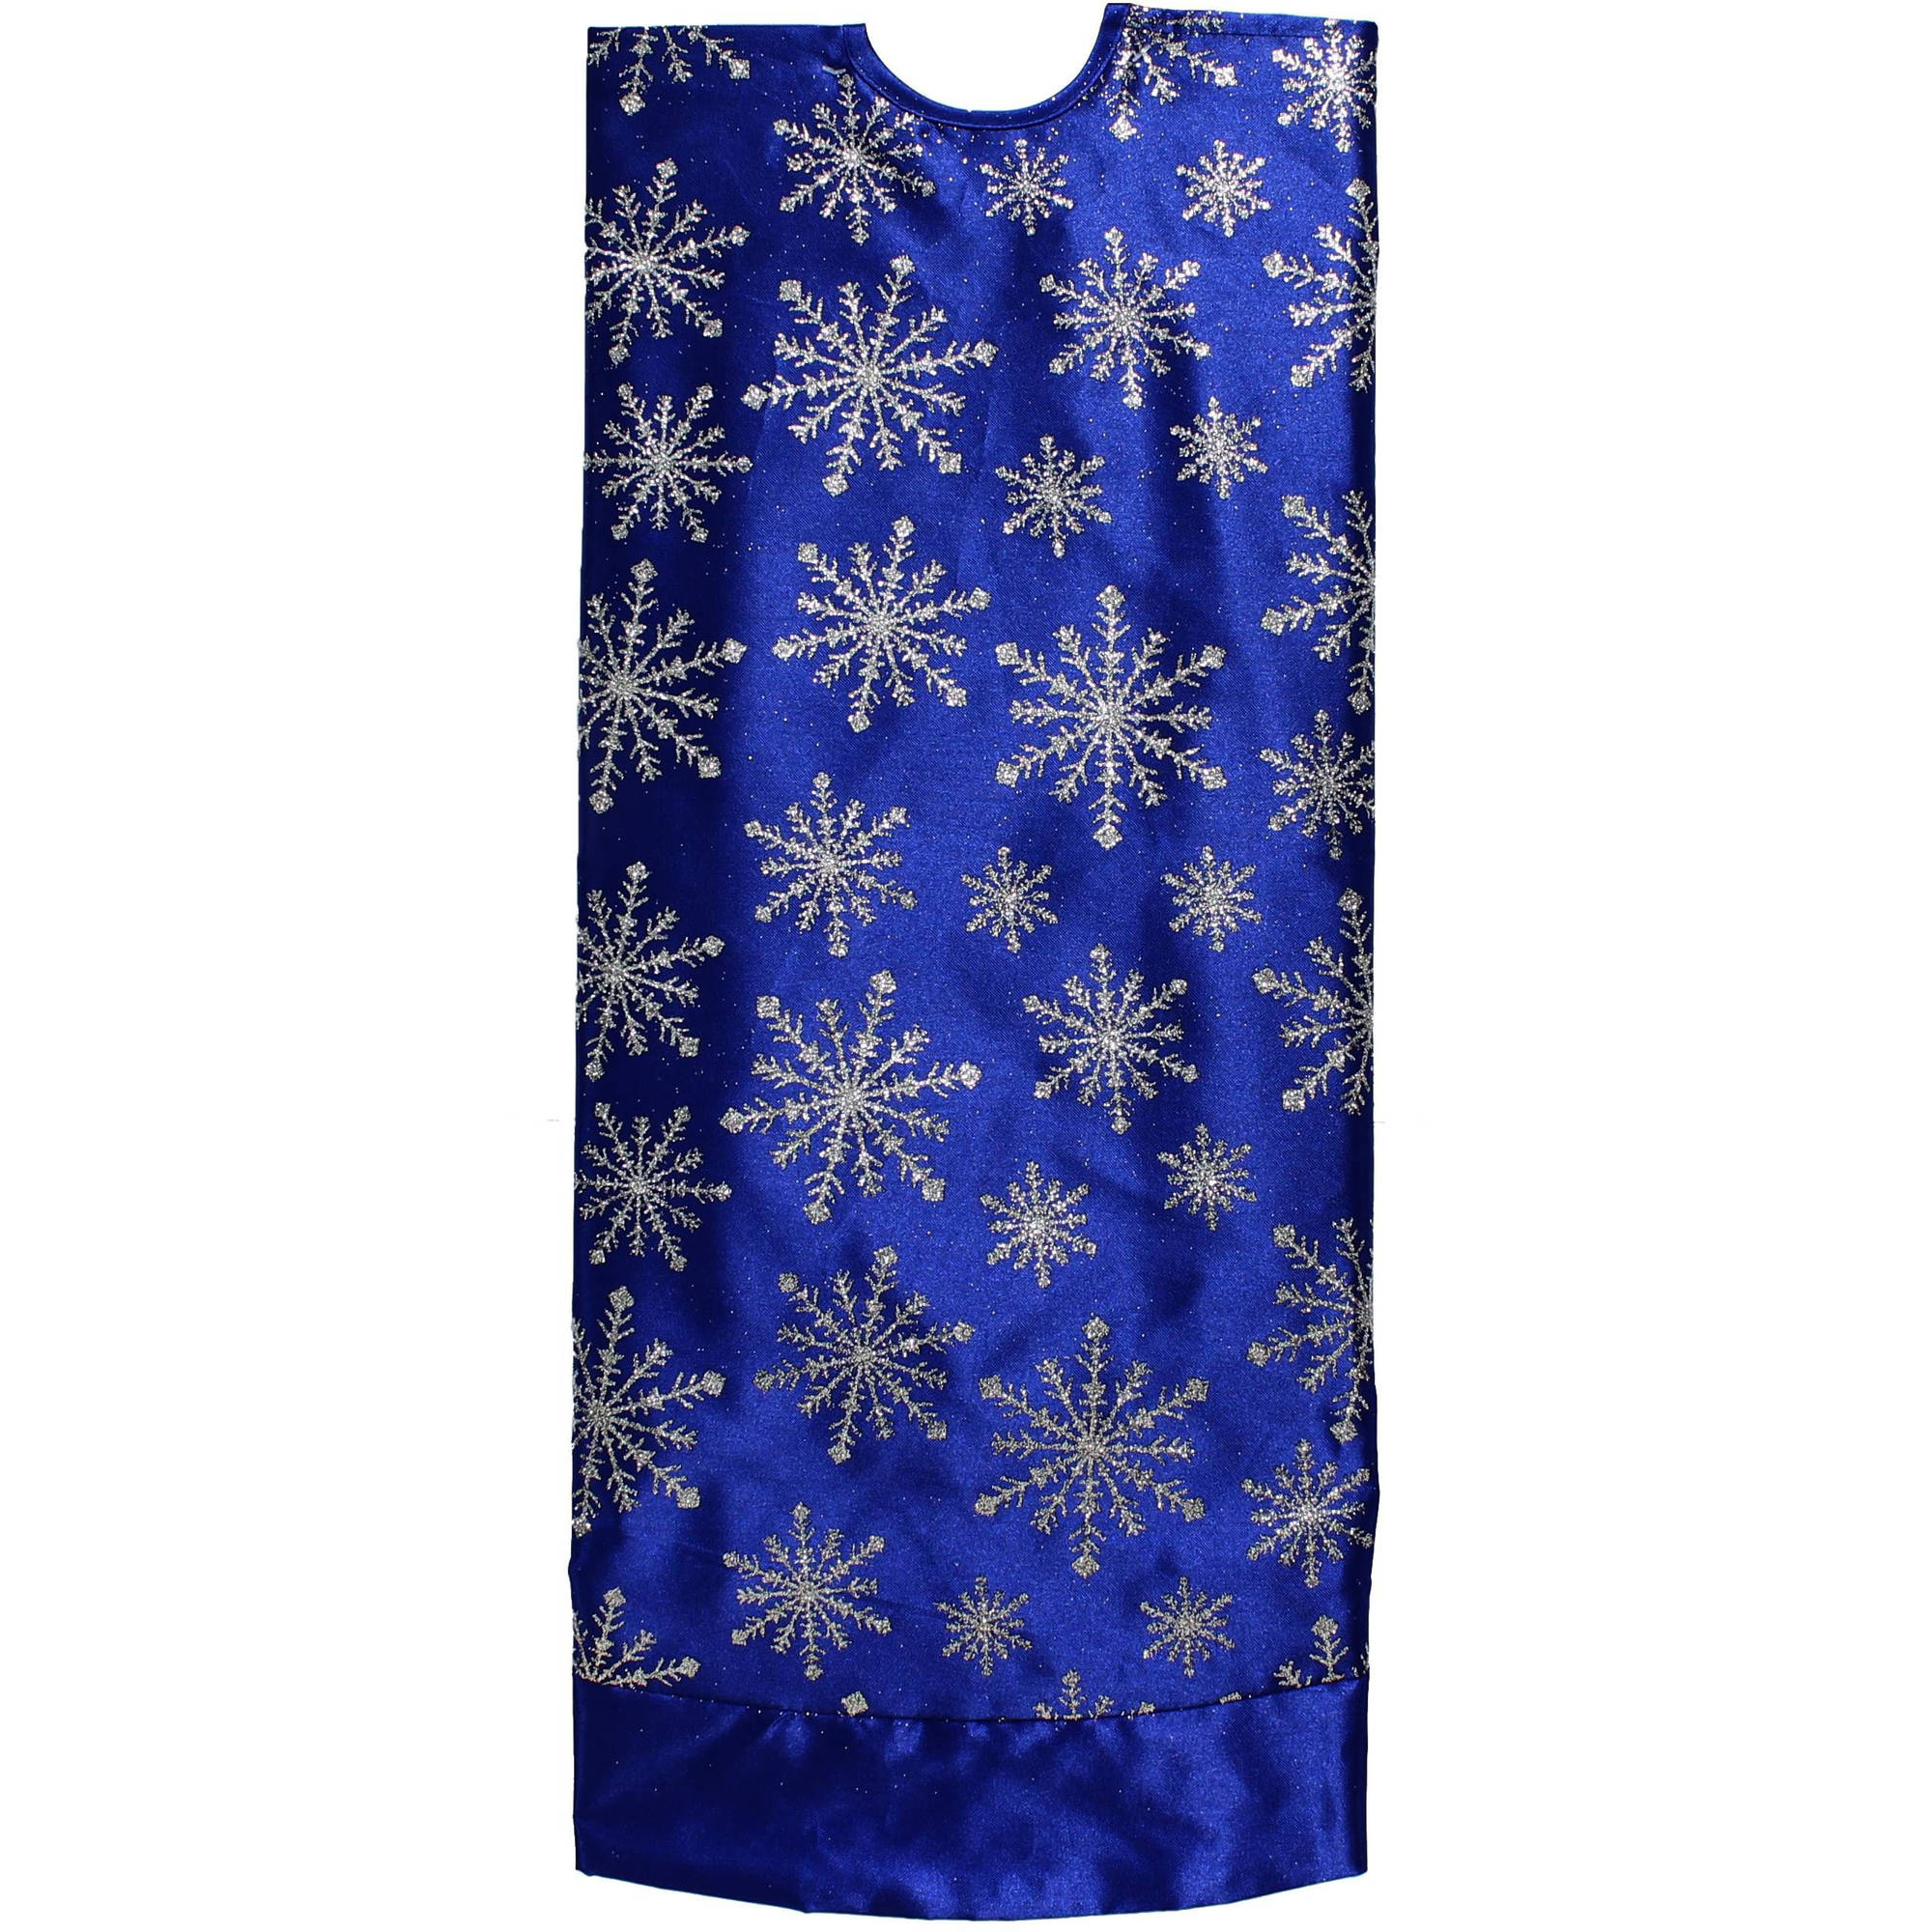 Satiny Gold with Glitter Snowflakes Christmas Tree Skirt 48 Inch